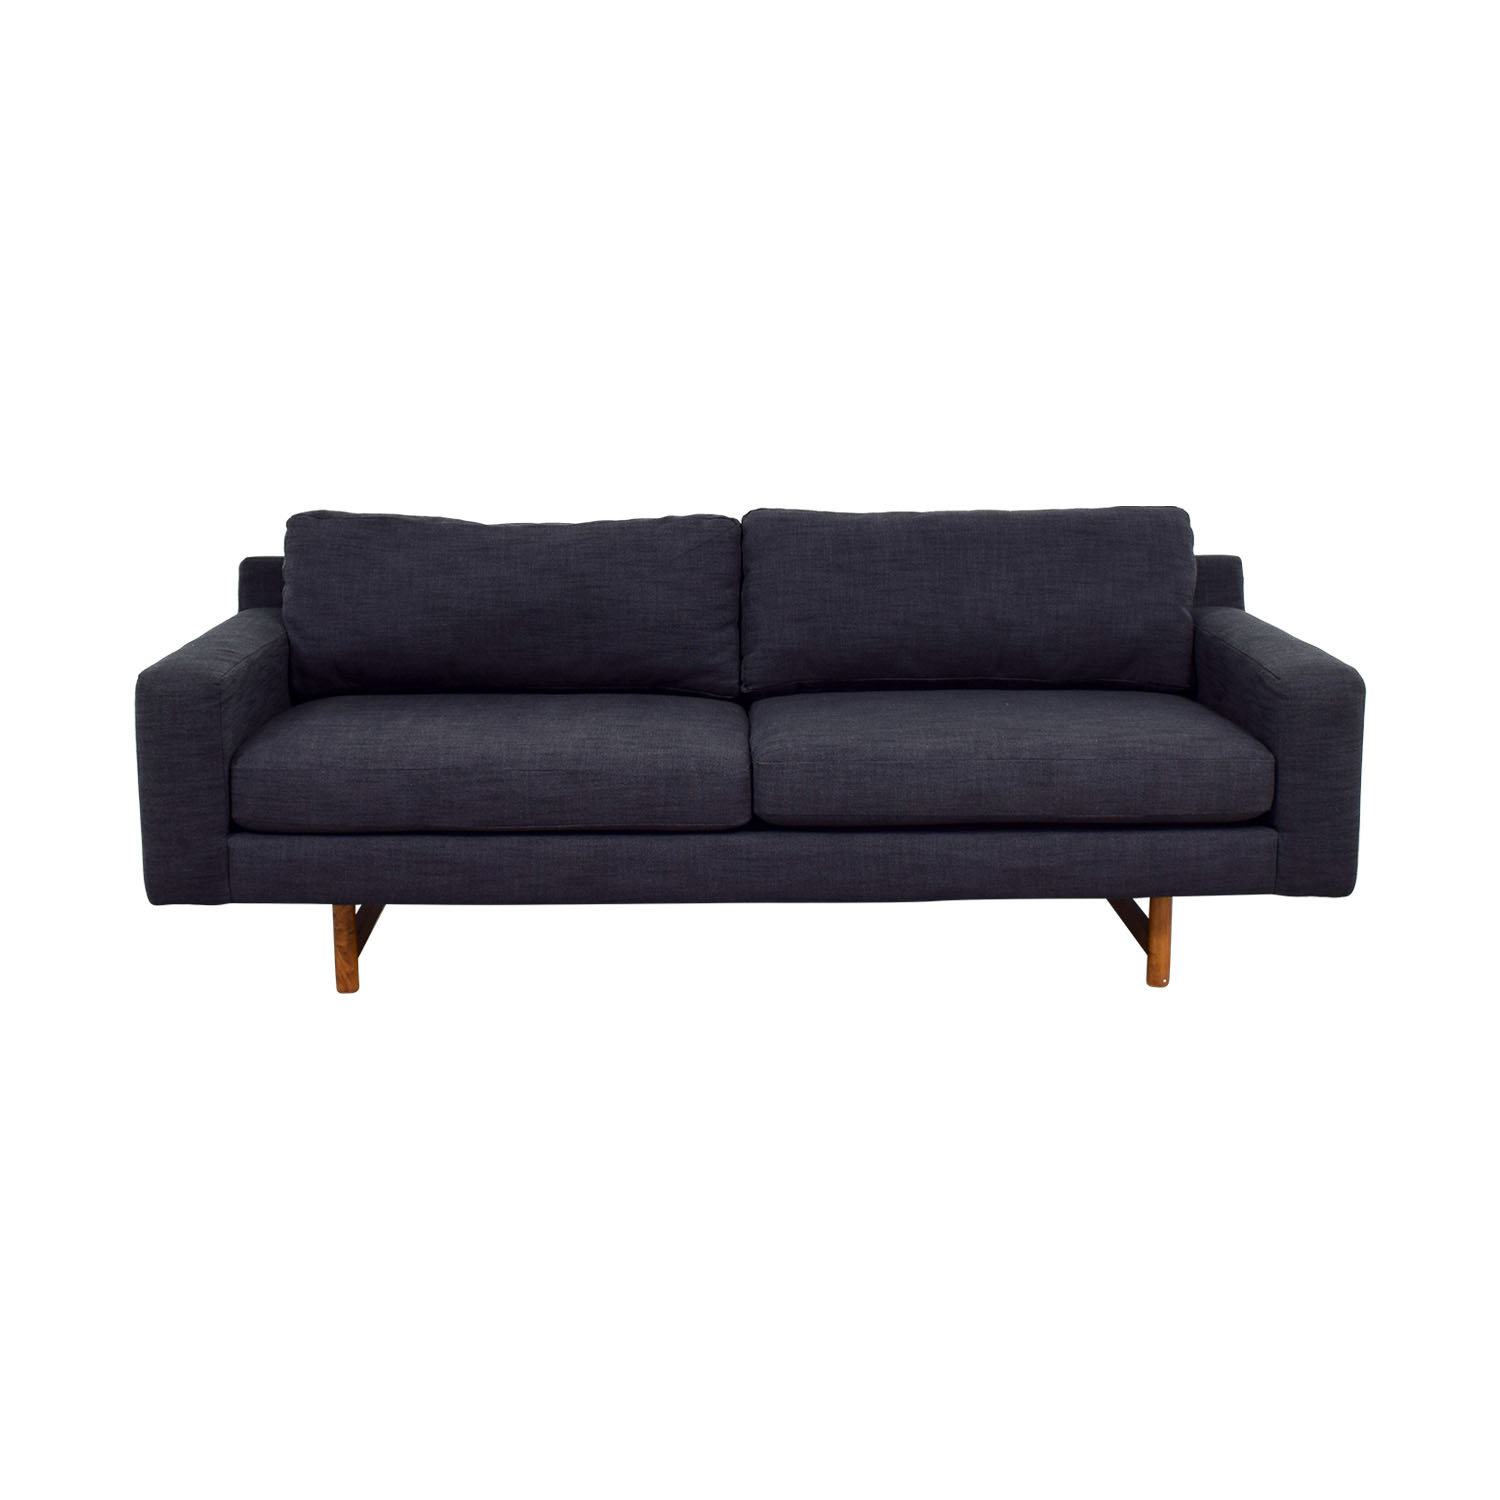 buy West Elm West Elm Blue Two-Cushion Sofa online